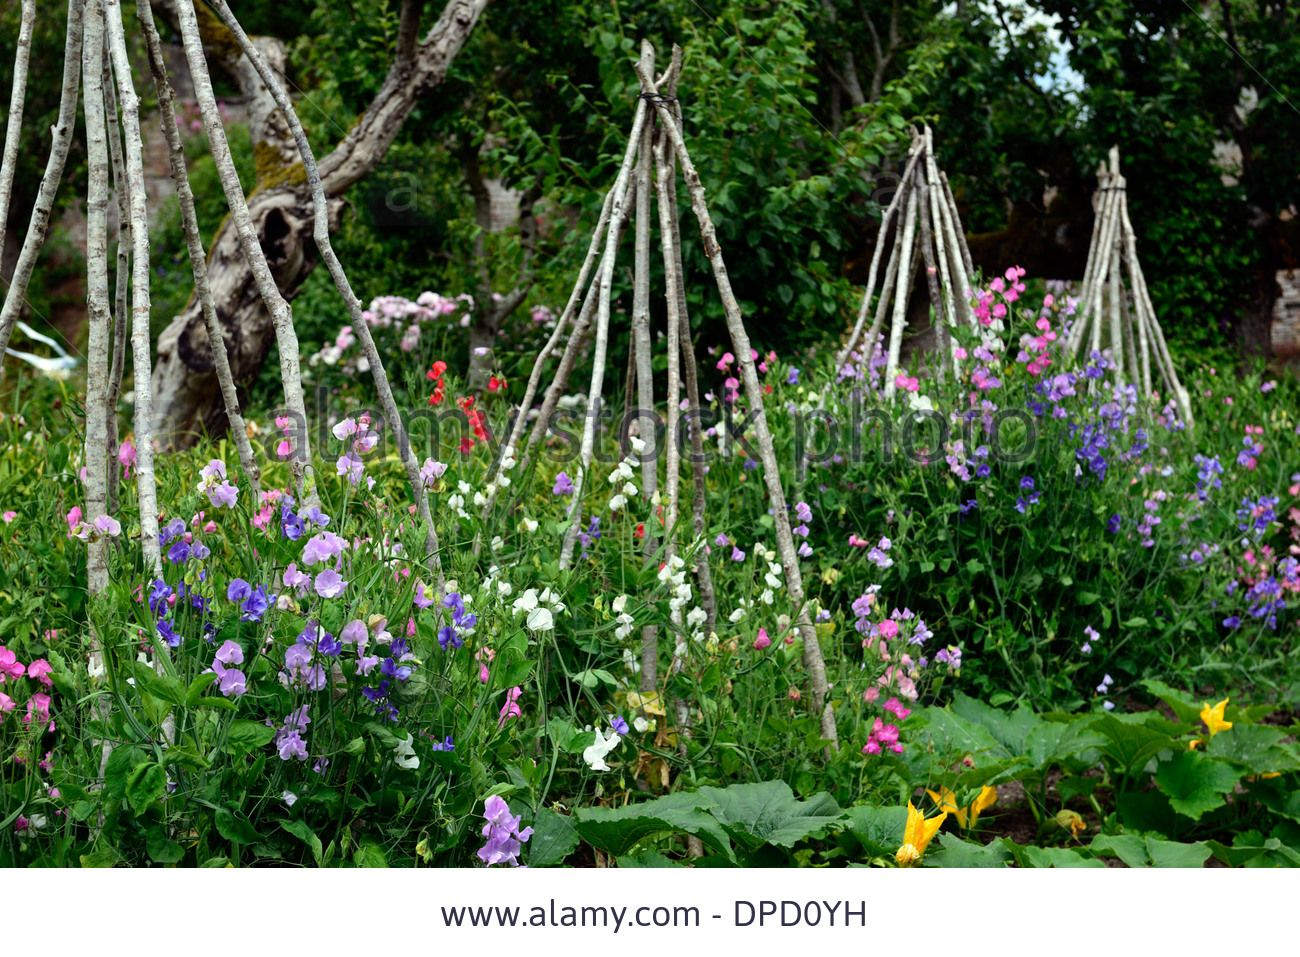 Lathyrus Sweet Peas Pea Grow Growing Up Wigwam Plant Supports